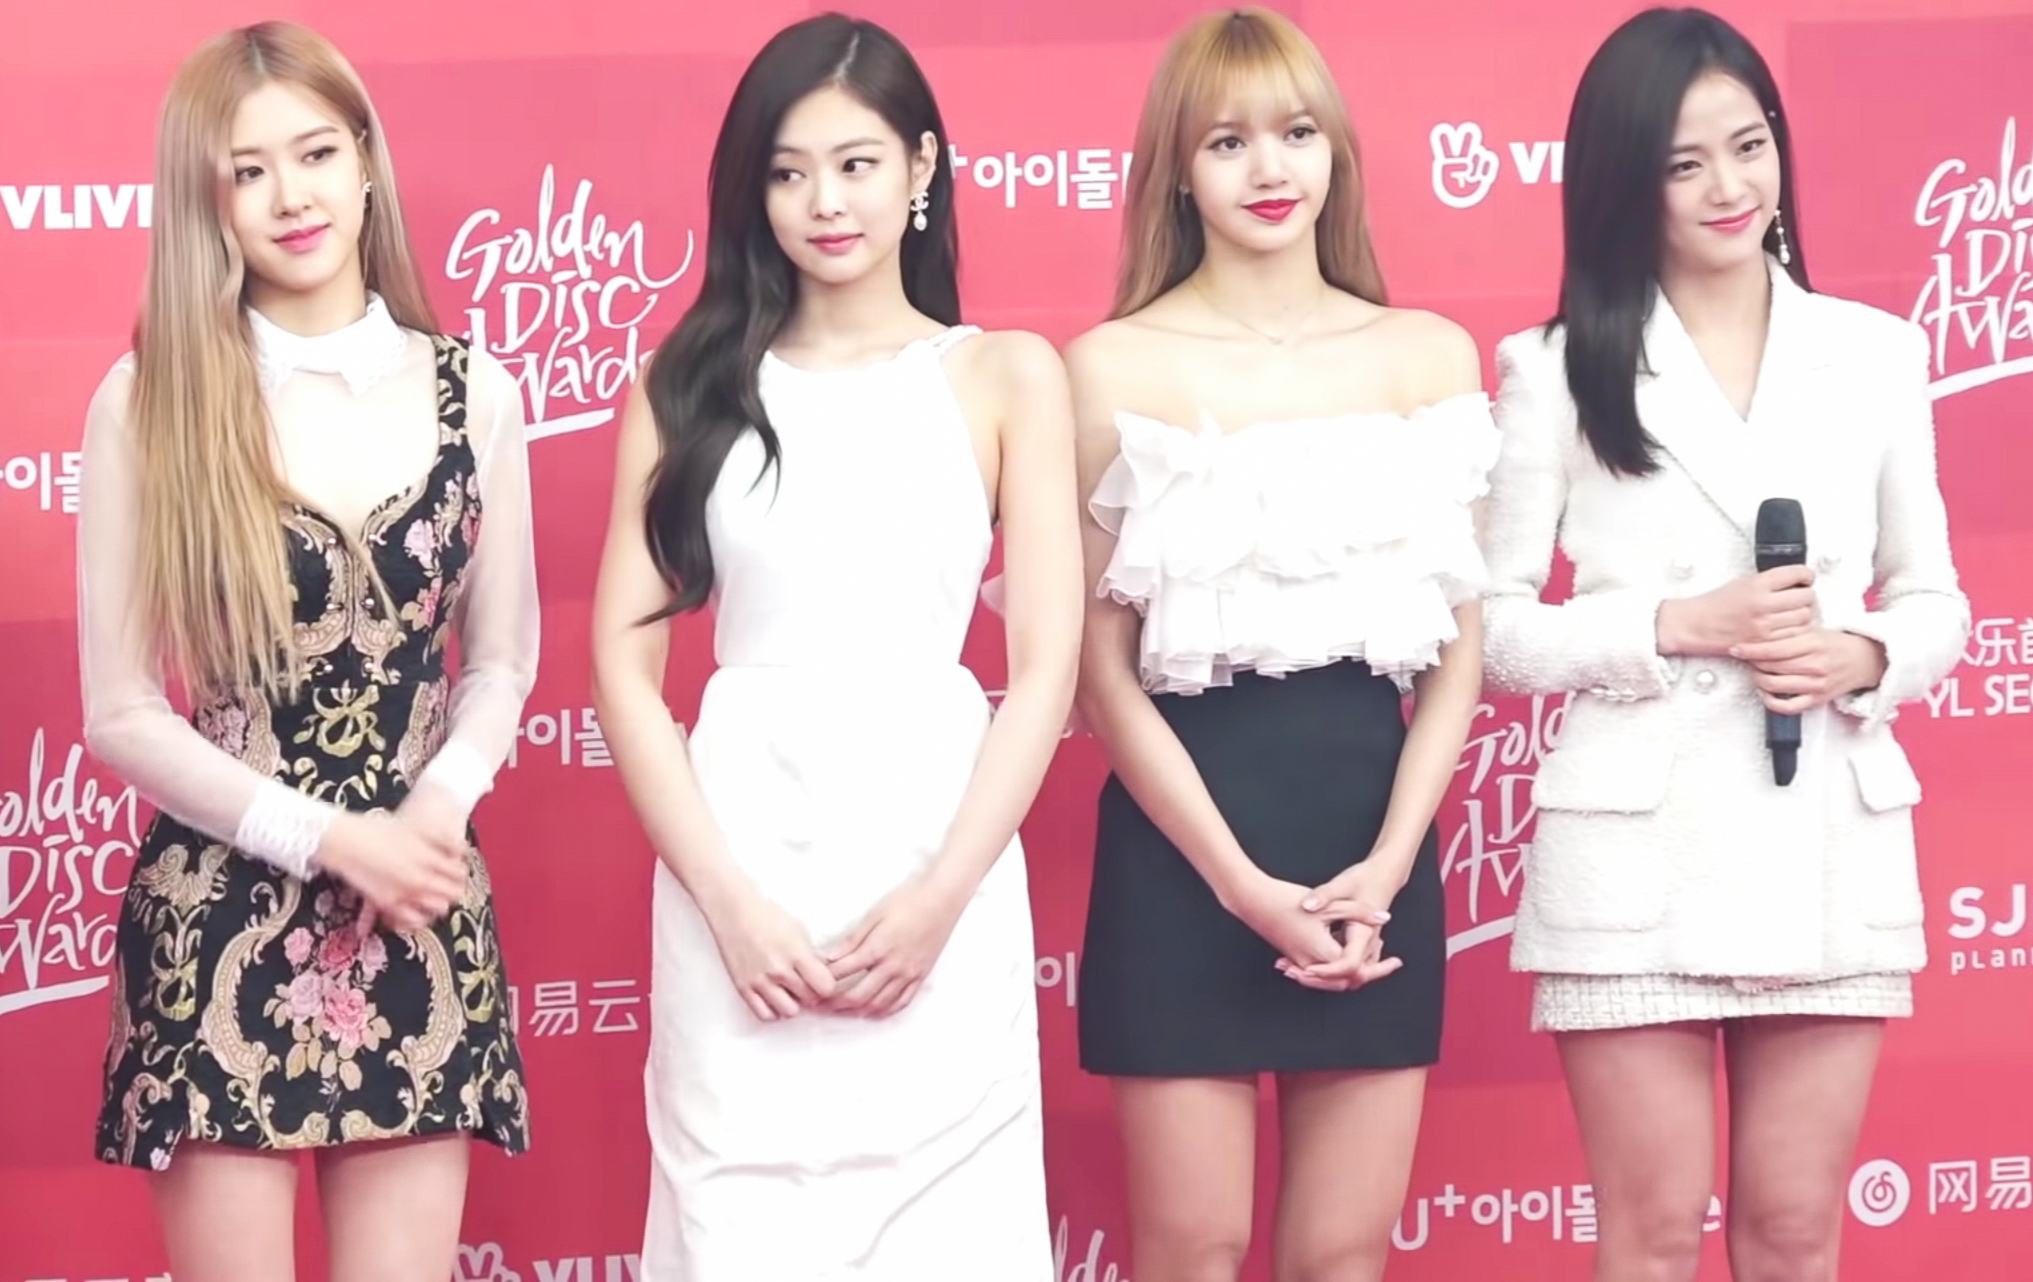 Image result for blackpink golden disc award""